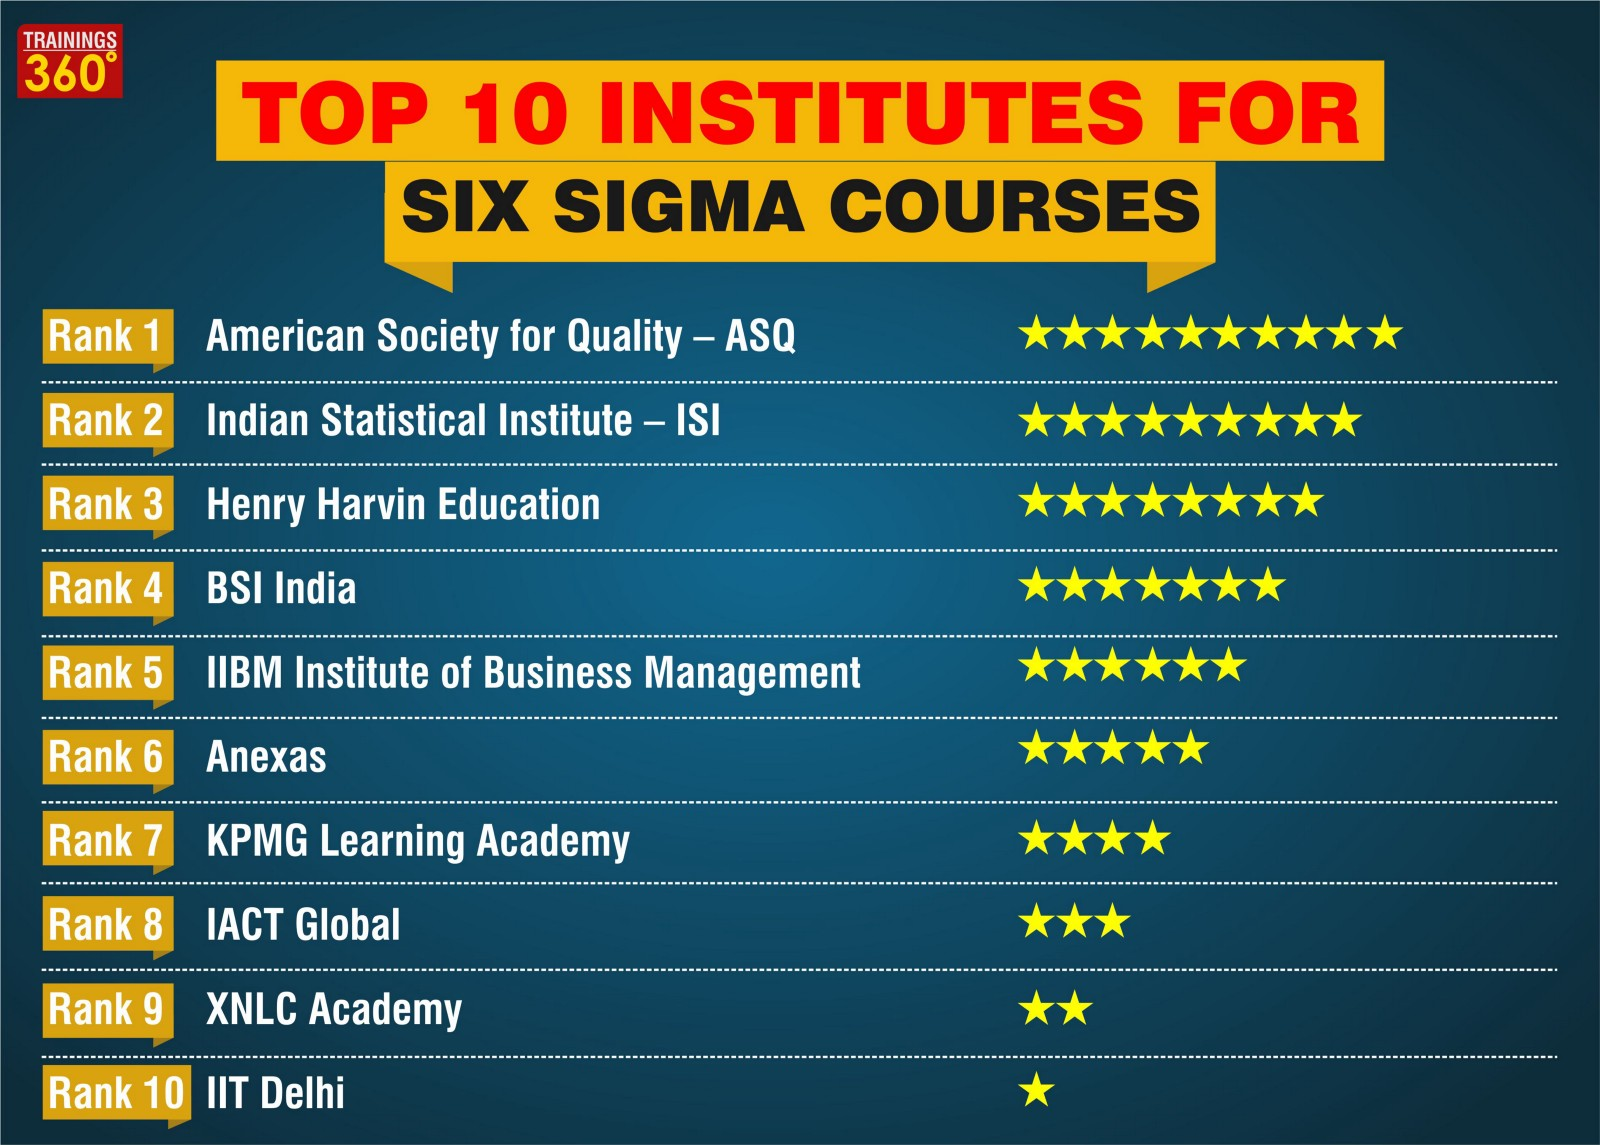 Top 10 institutes for six sigma courses trainings360 medium top 10 institutes for six sigma courses 1betcityfo Image collections